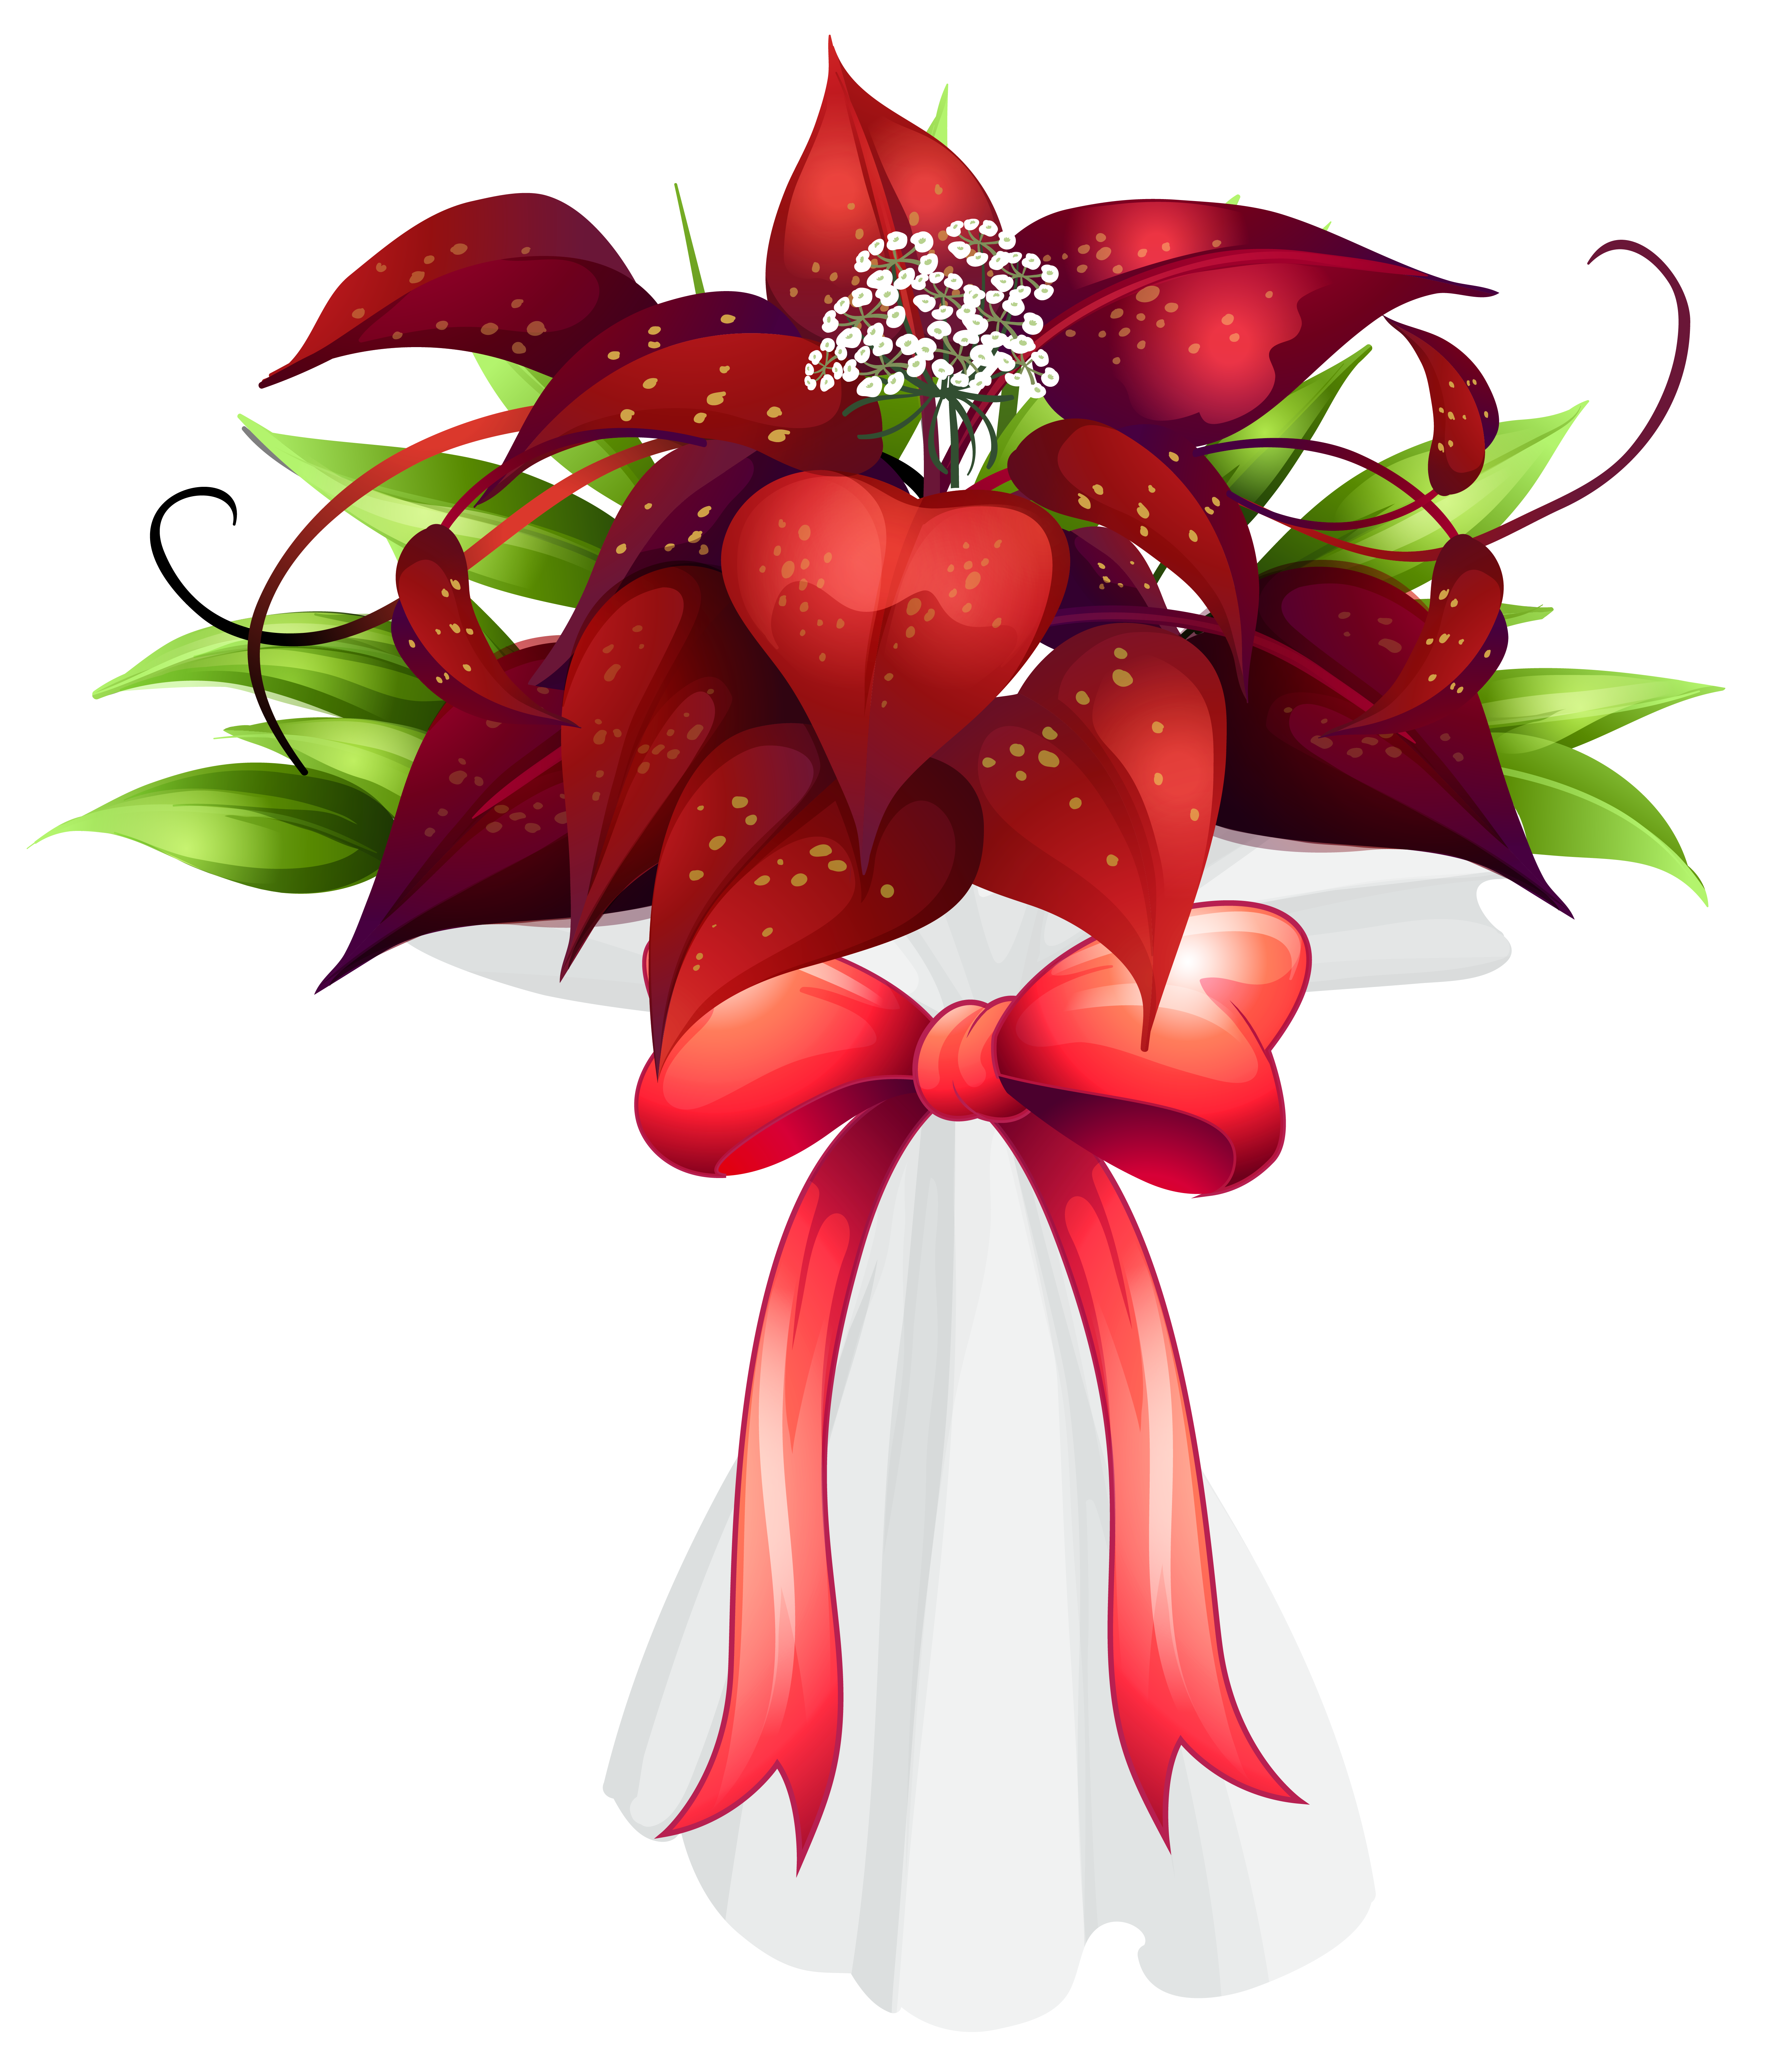 Red Flowers Bouquet PNG Clipart Image.